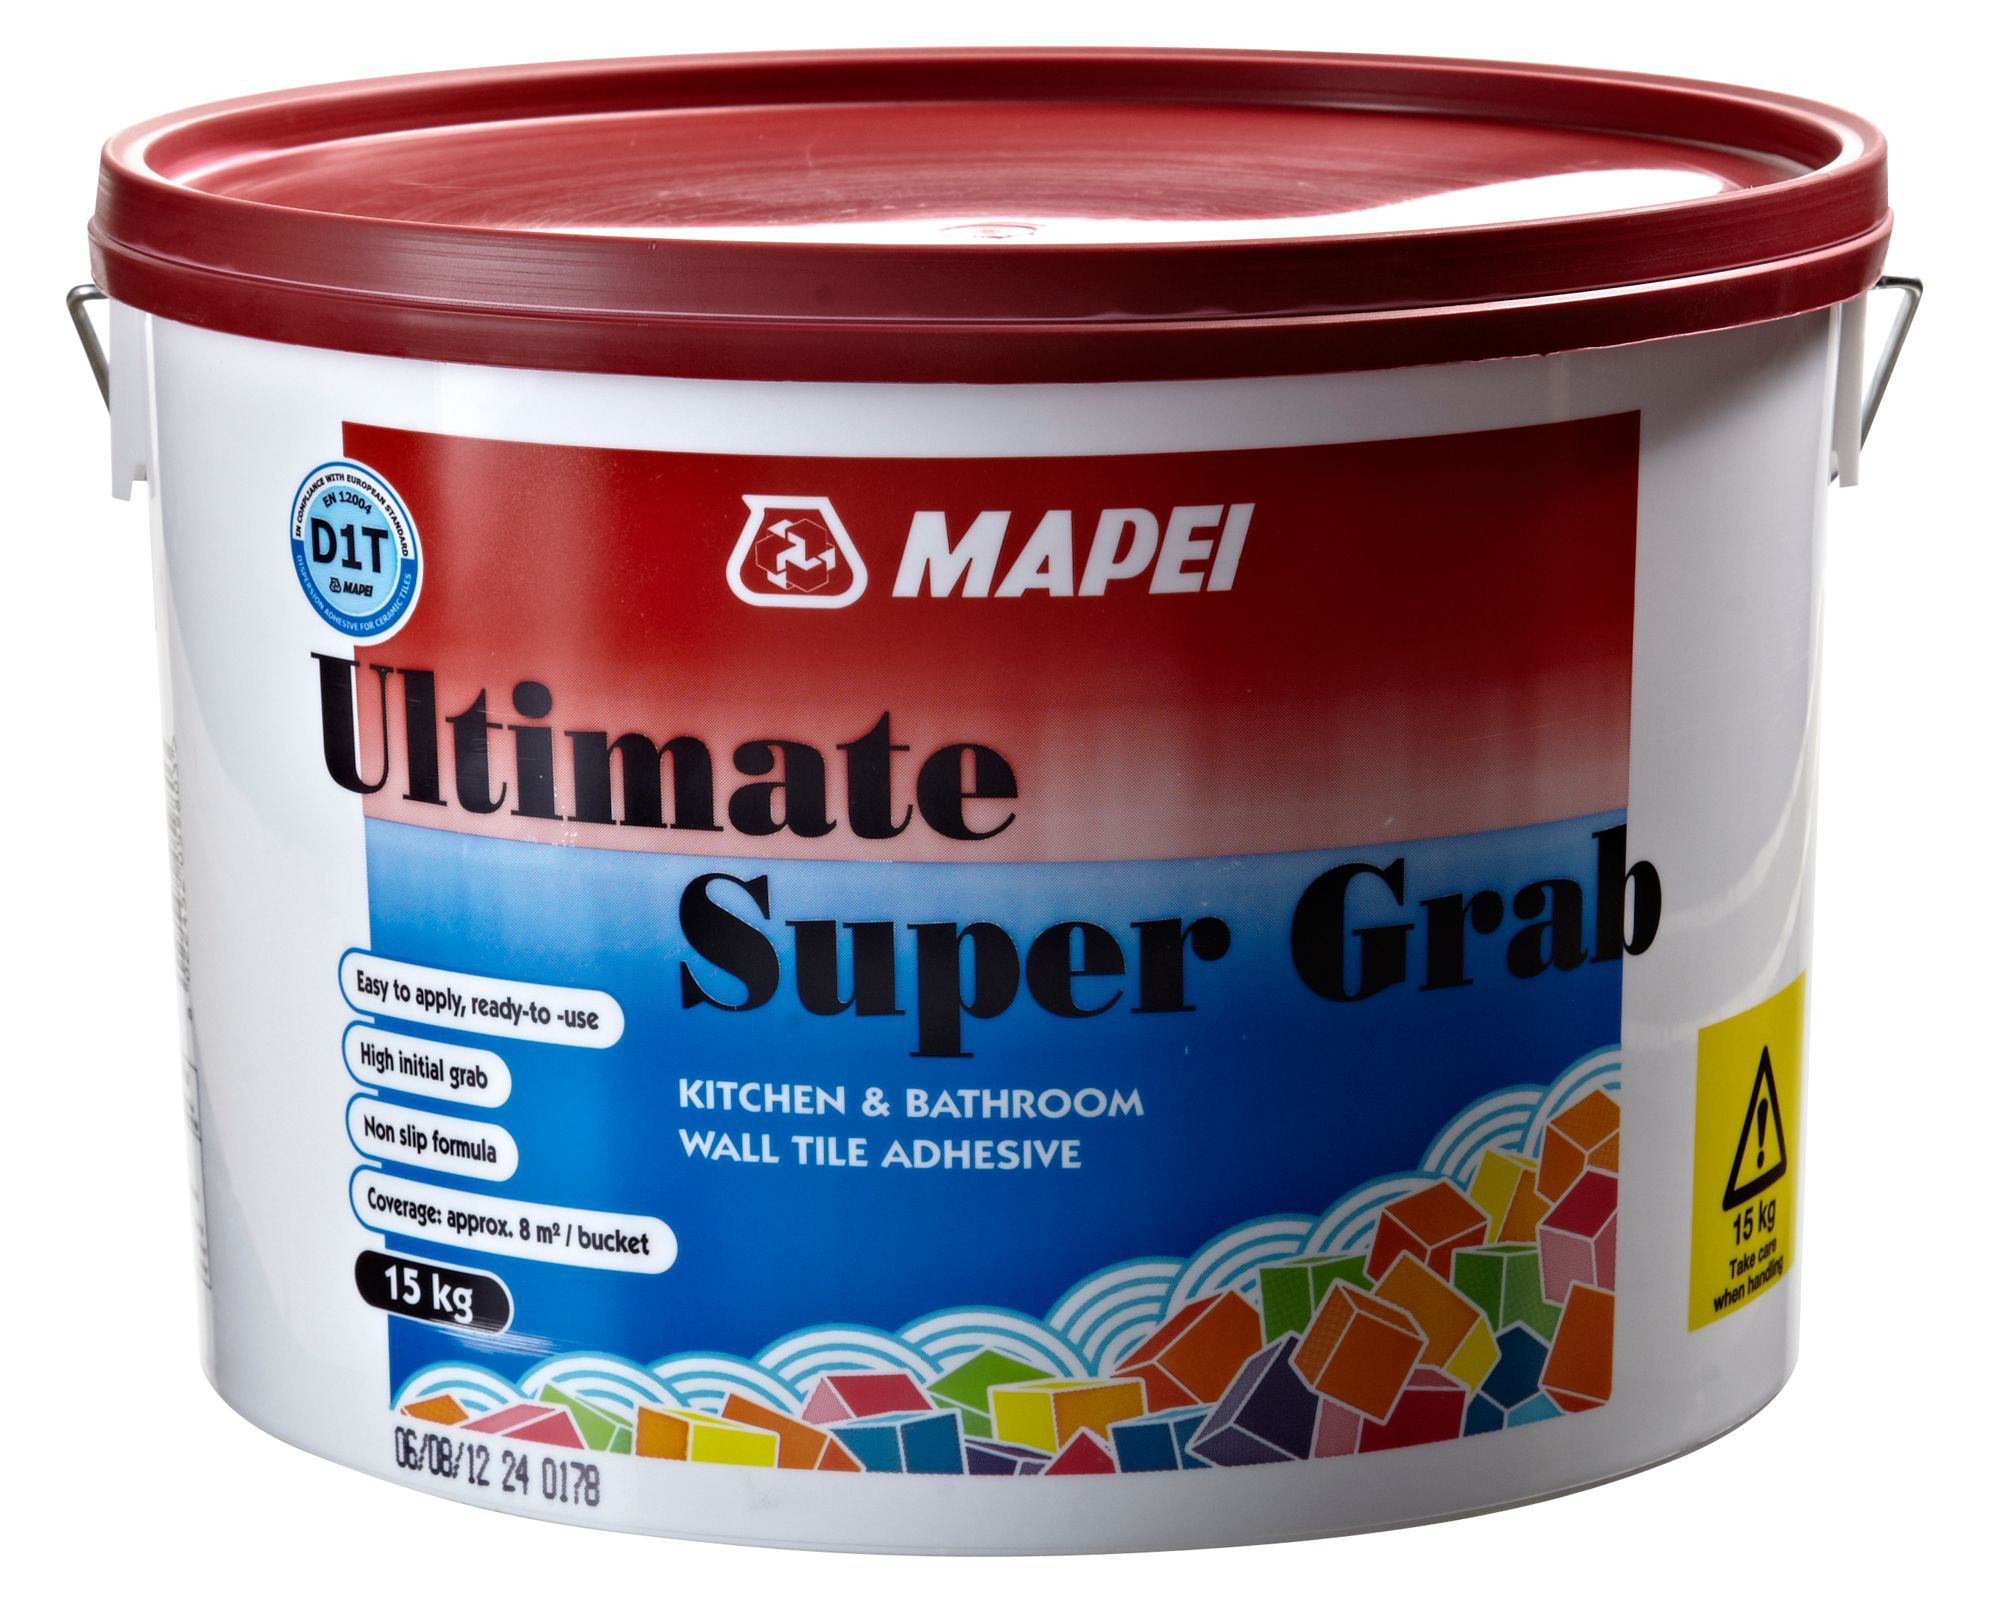 Mapei Ultimate Super Grab Ready to use Wall tile adhesive 15kg   Departments   DIY at B&Q